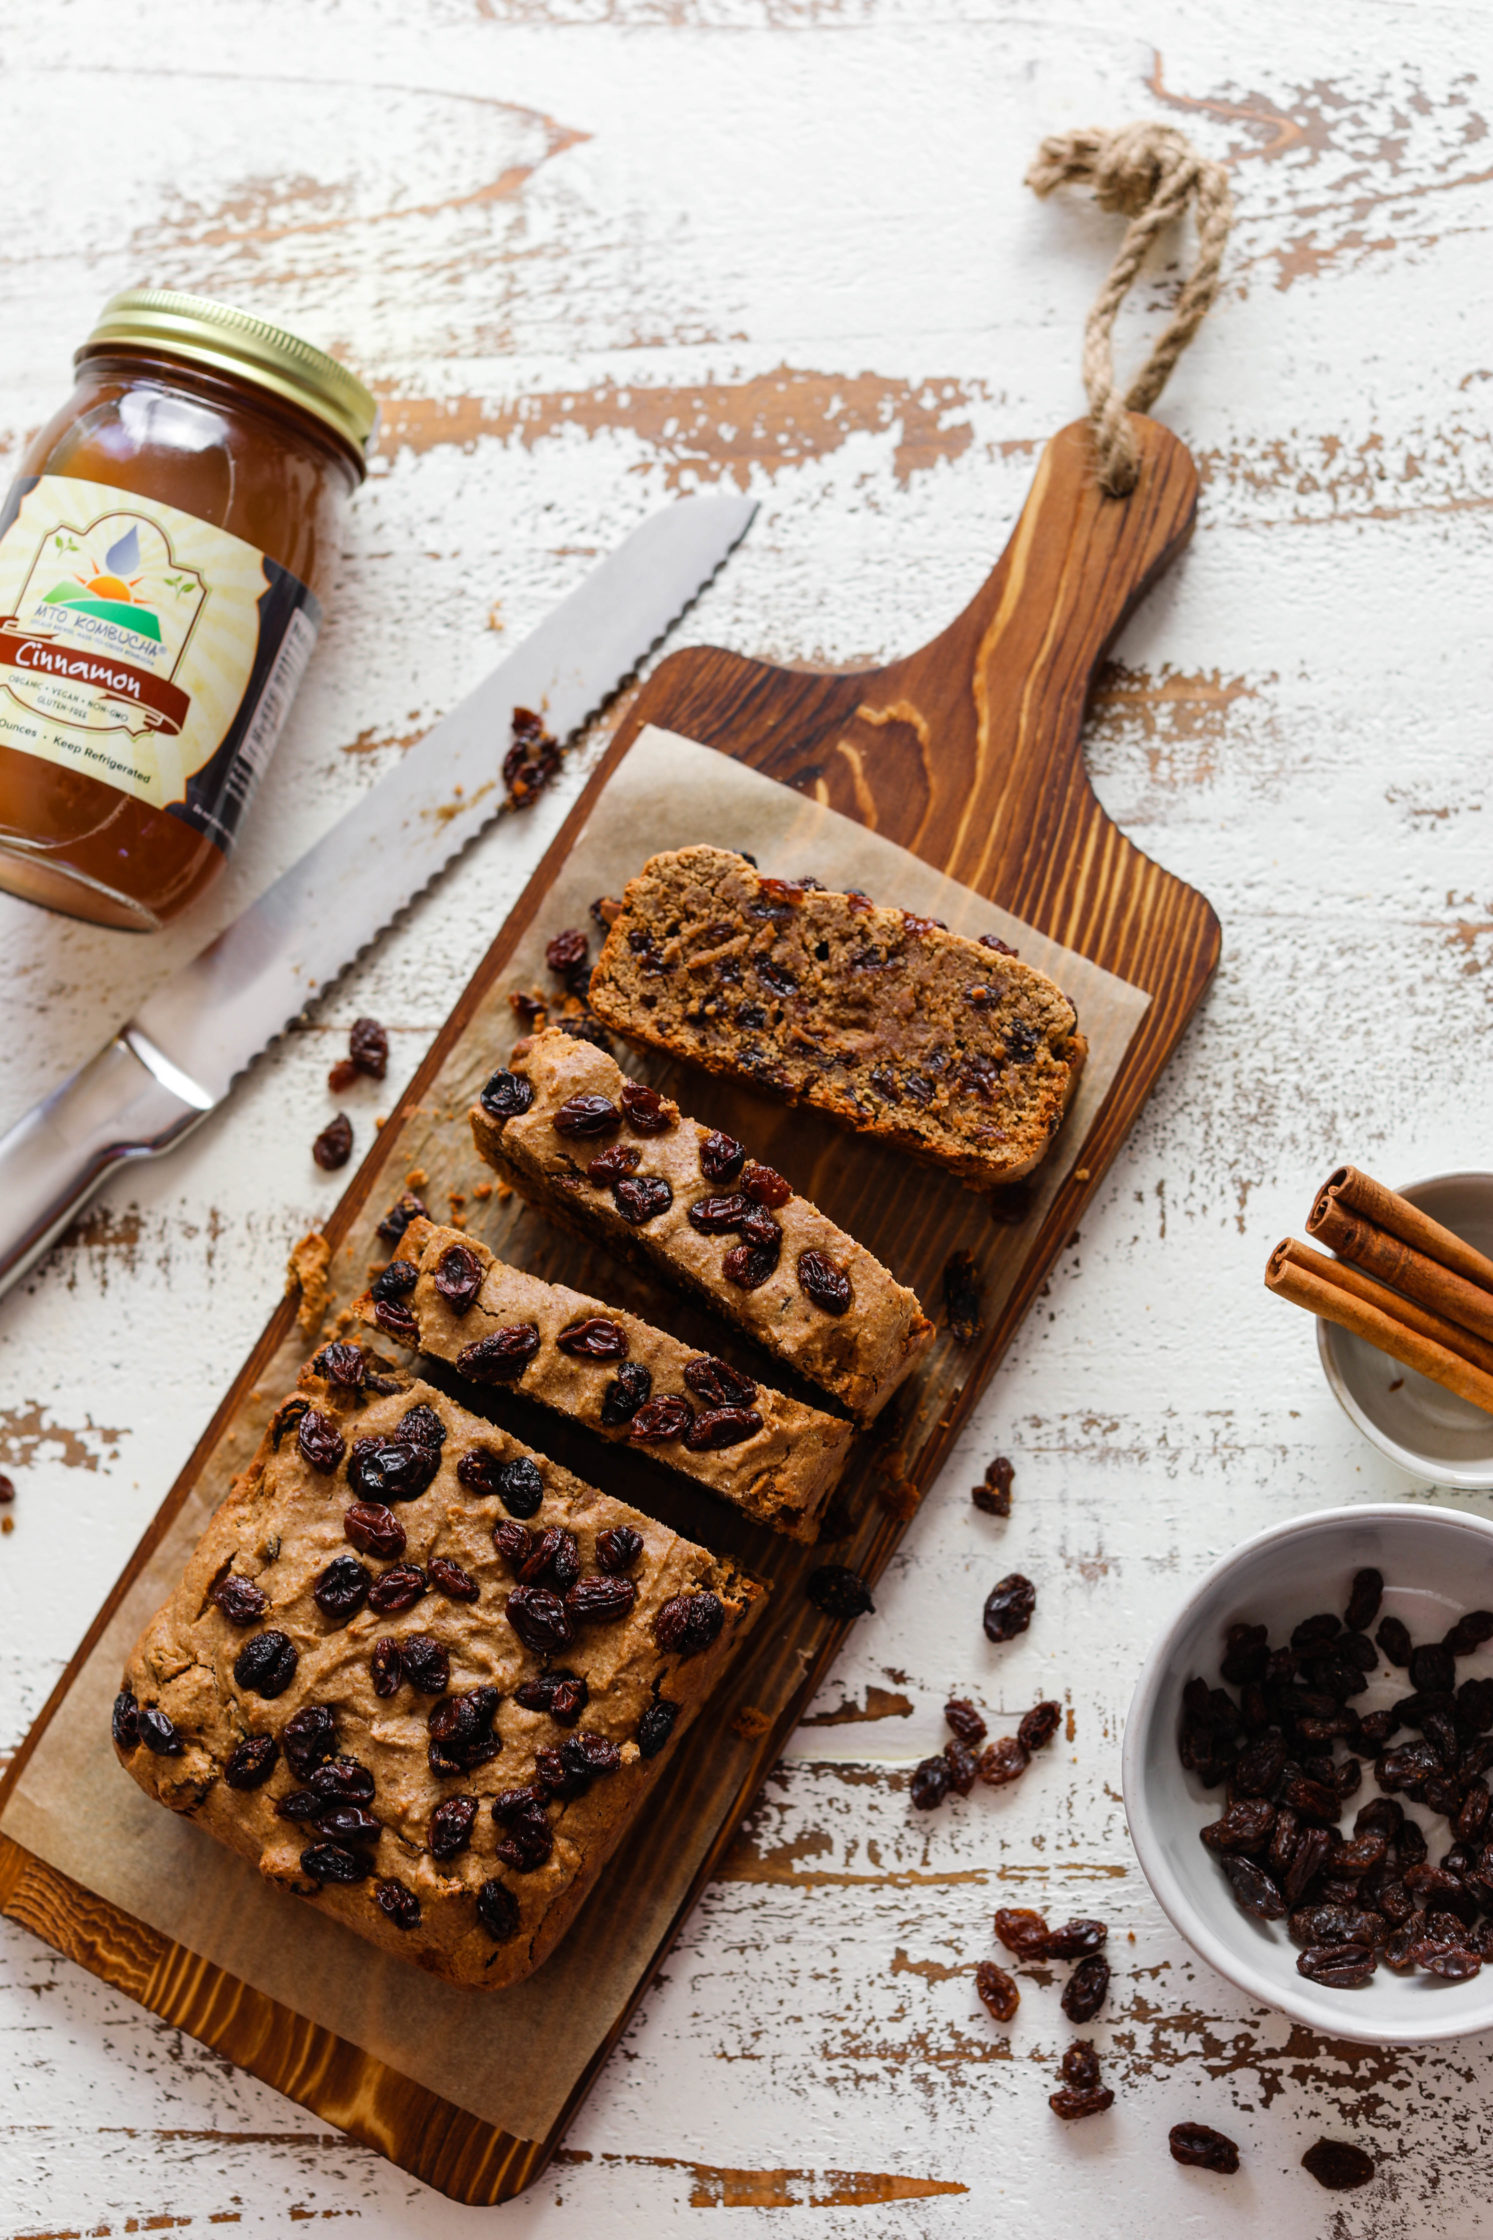 Vegan & Gluten-Free Cinnamon Raisin Bread by Flora & Vino